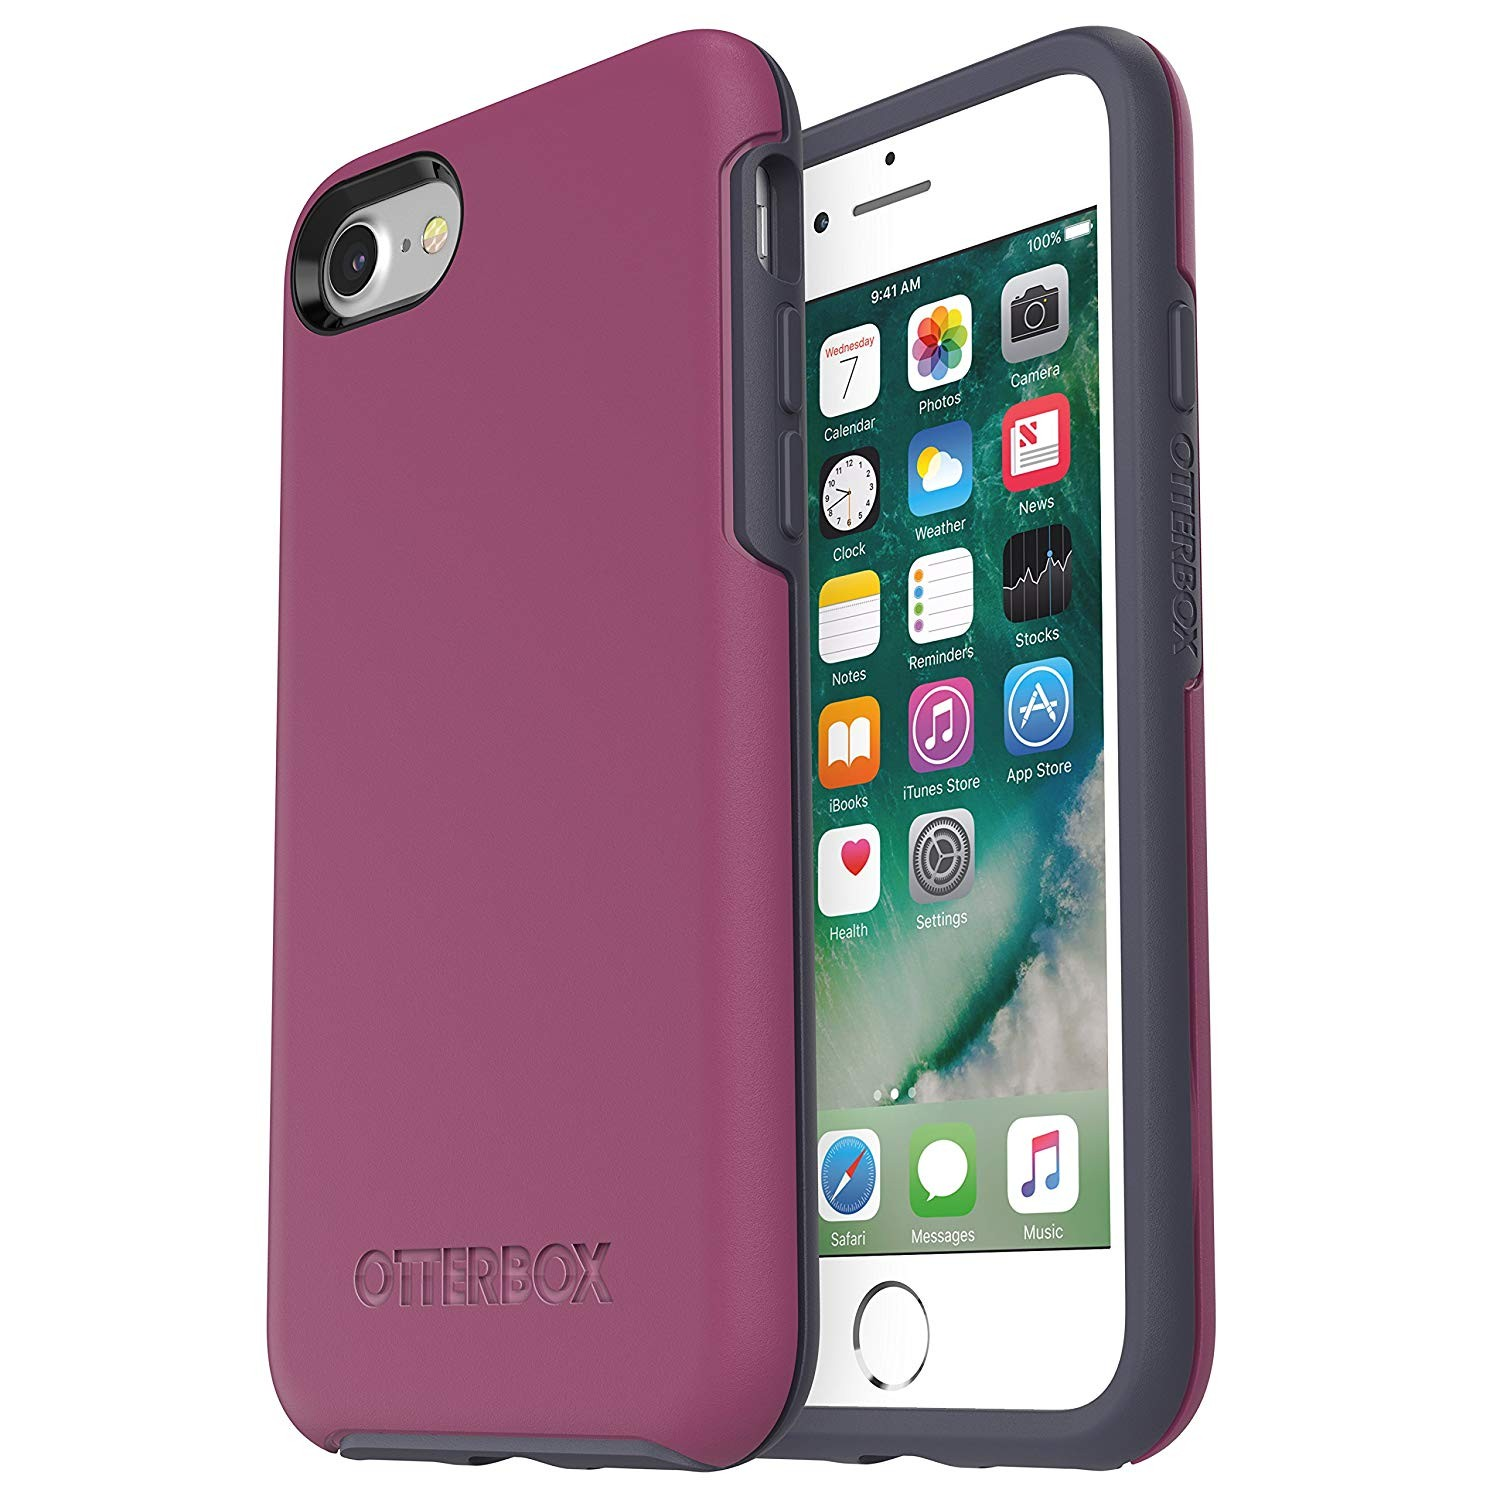 OtterBox Symmetry Clear Series Case for iPhone 8 & iPhone 7 - Mix Berry Jam, 77-56671